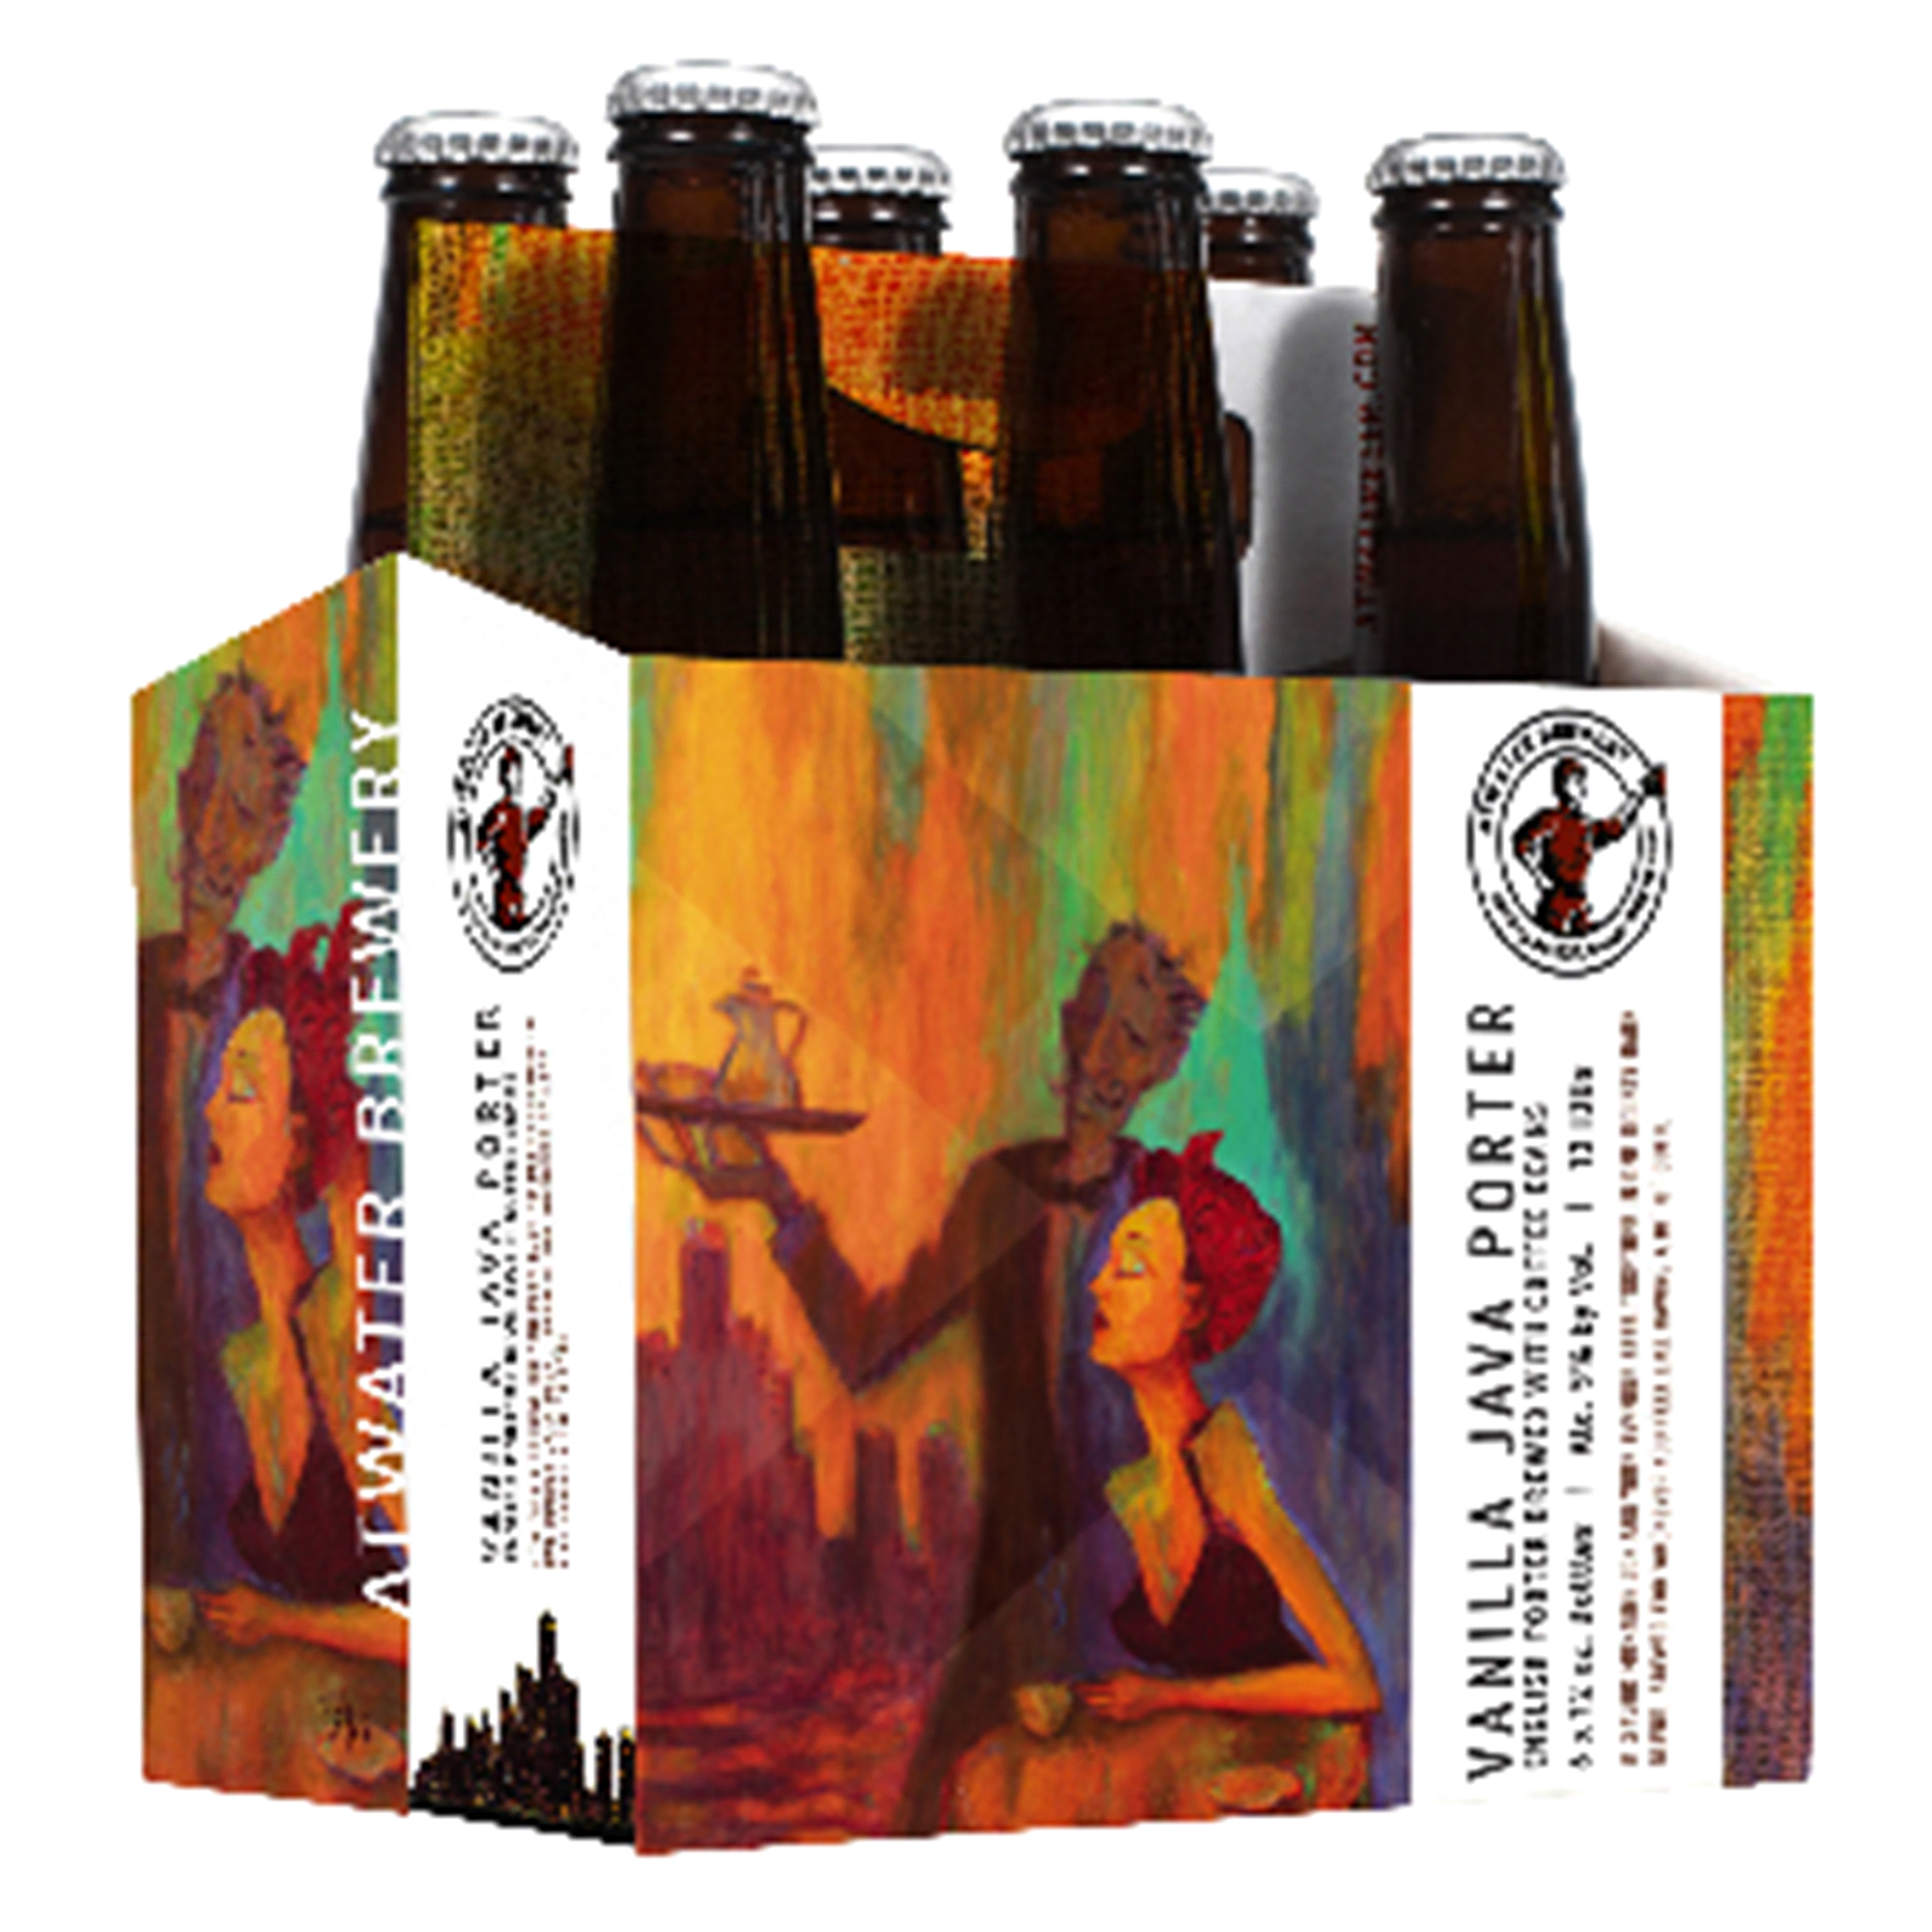 c9a6a5a6120 Atwater Vanilla Java Porter Beer12 oz 6 pk